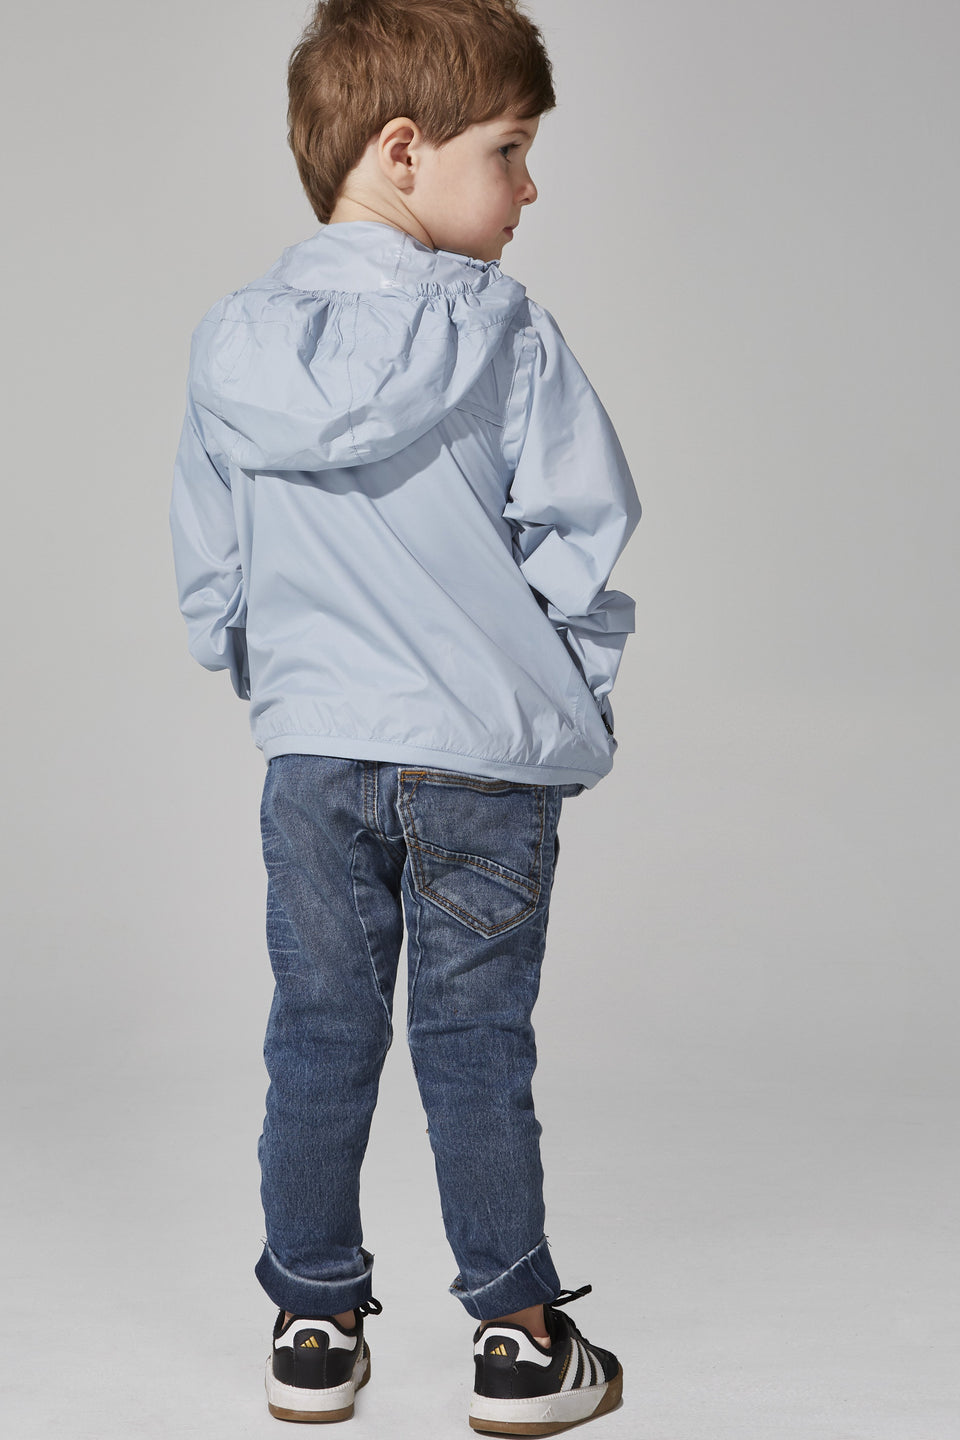 Kids Celestial Blue Full Zip Packable Jacket - Kids -  O8lifestyle